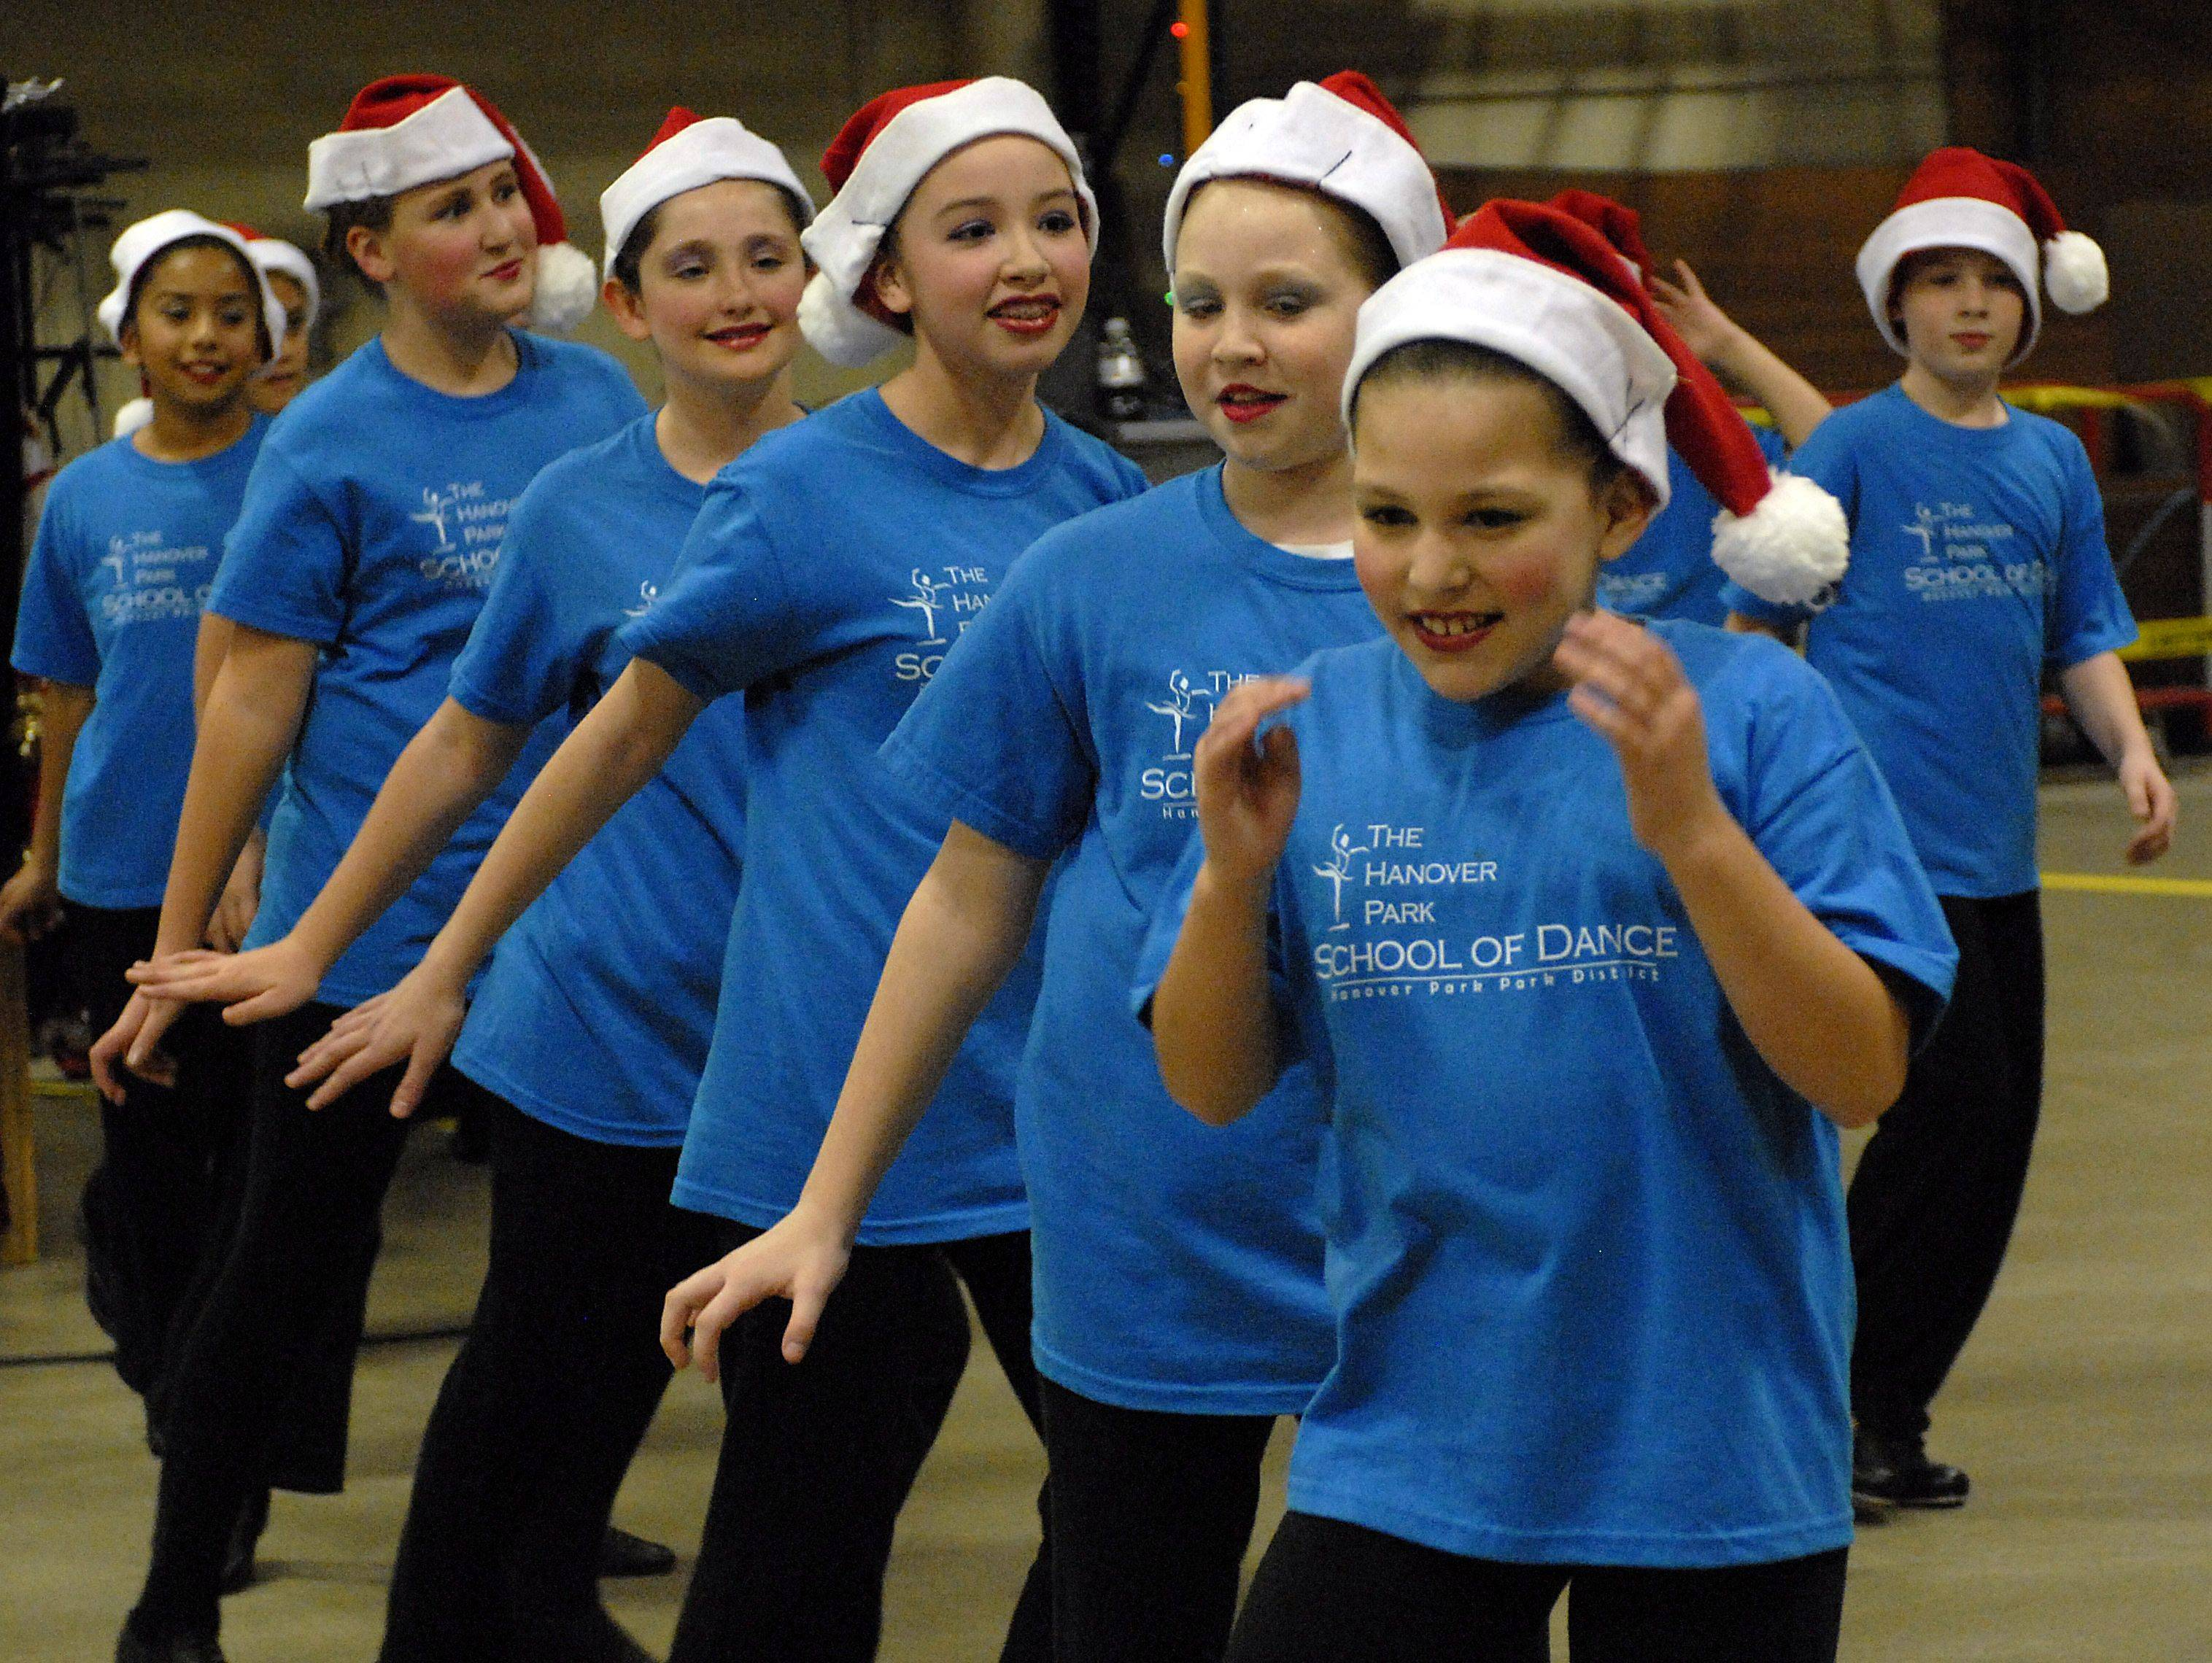 Part of the entertainment at the fifth-annual tree lighting ceremony in Hanover Park, Sophia Alvarado, 7, in front dances with the rest of the Hanover Park School of Dance bringing smiles and good cheer to all who attended the gala event.